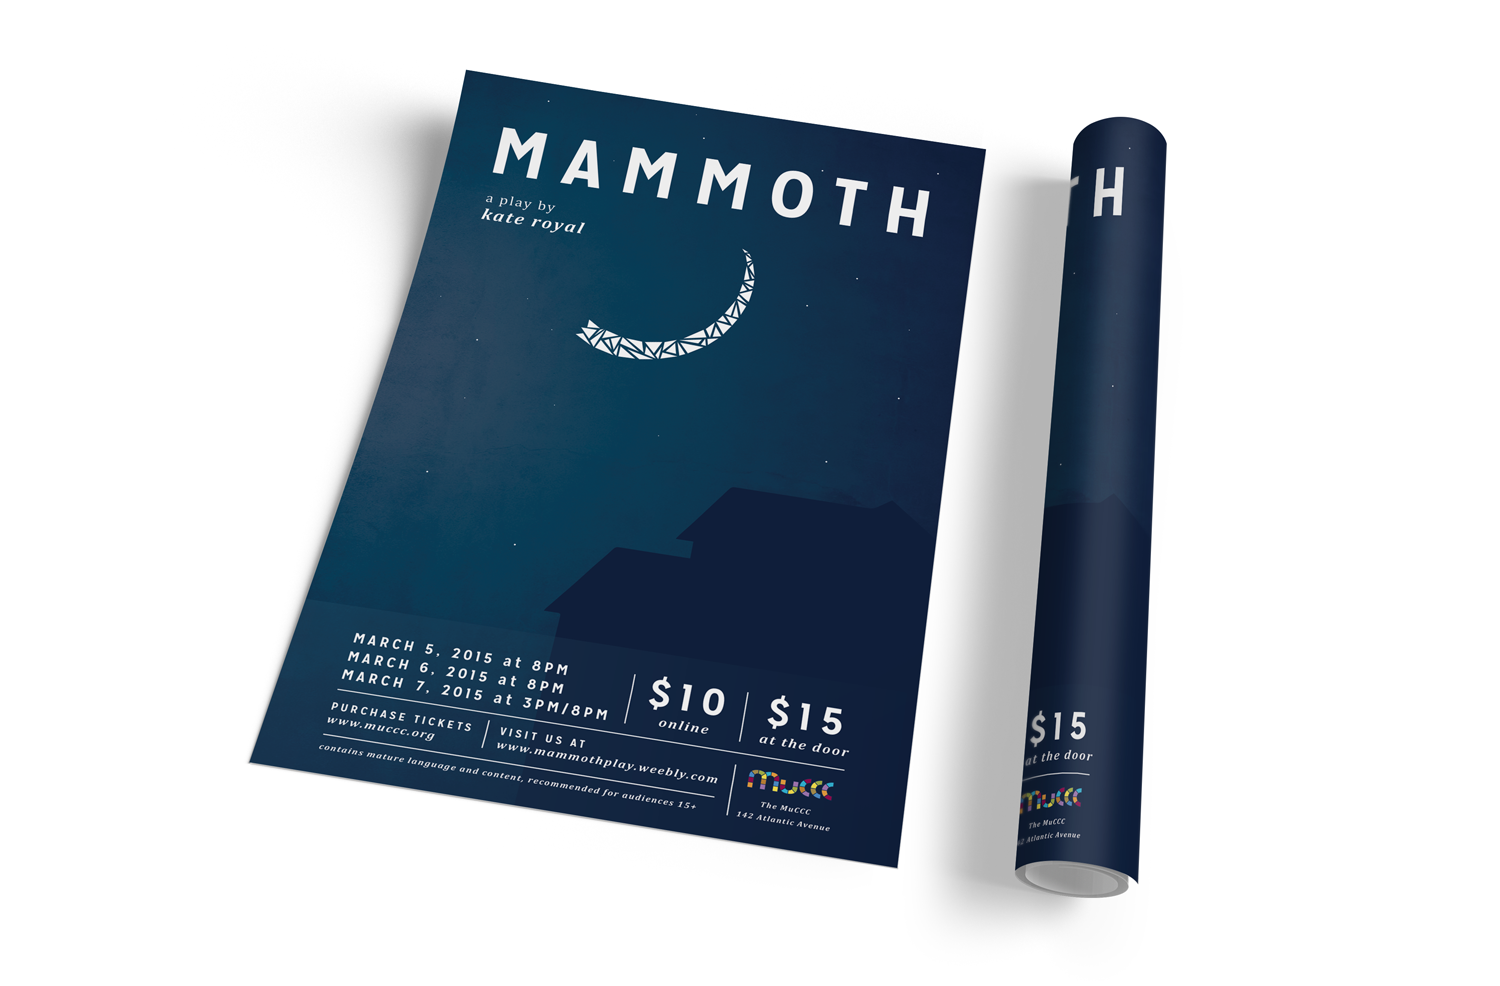 mammoth1.png